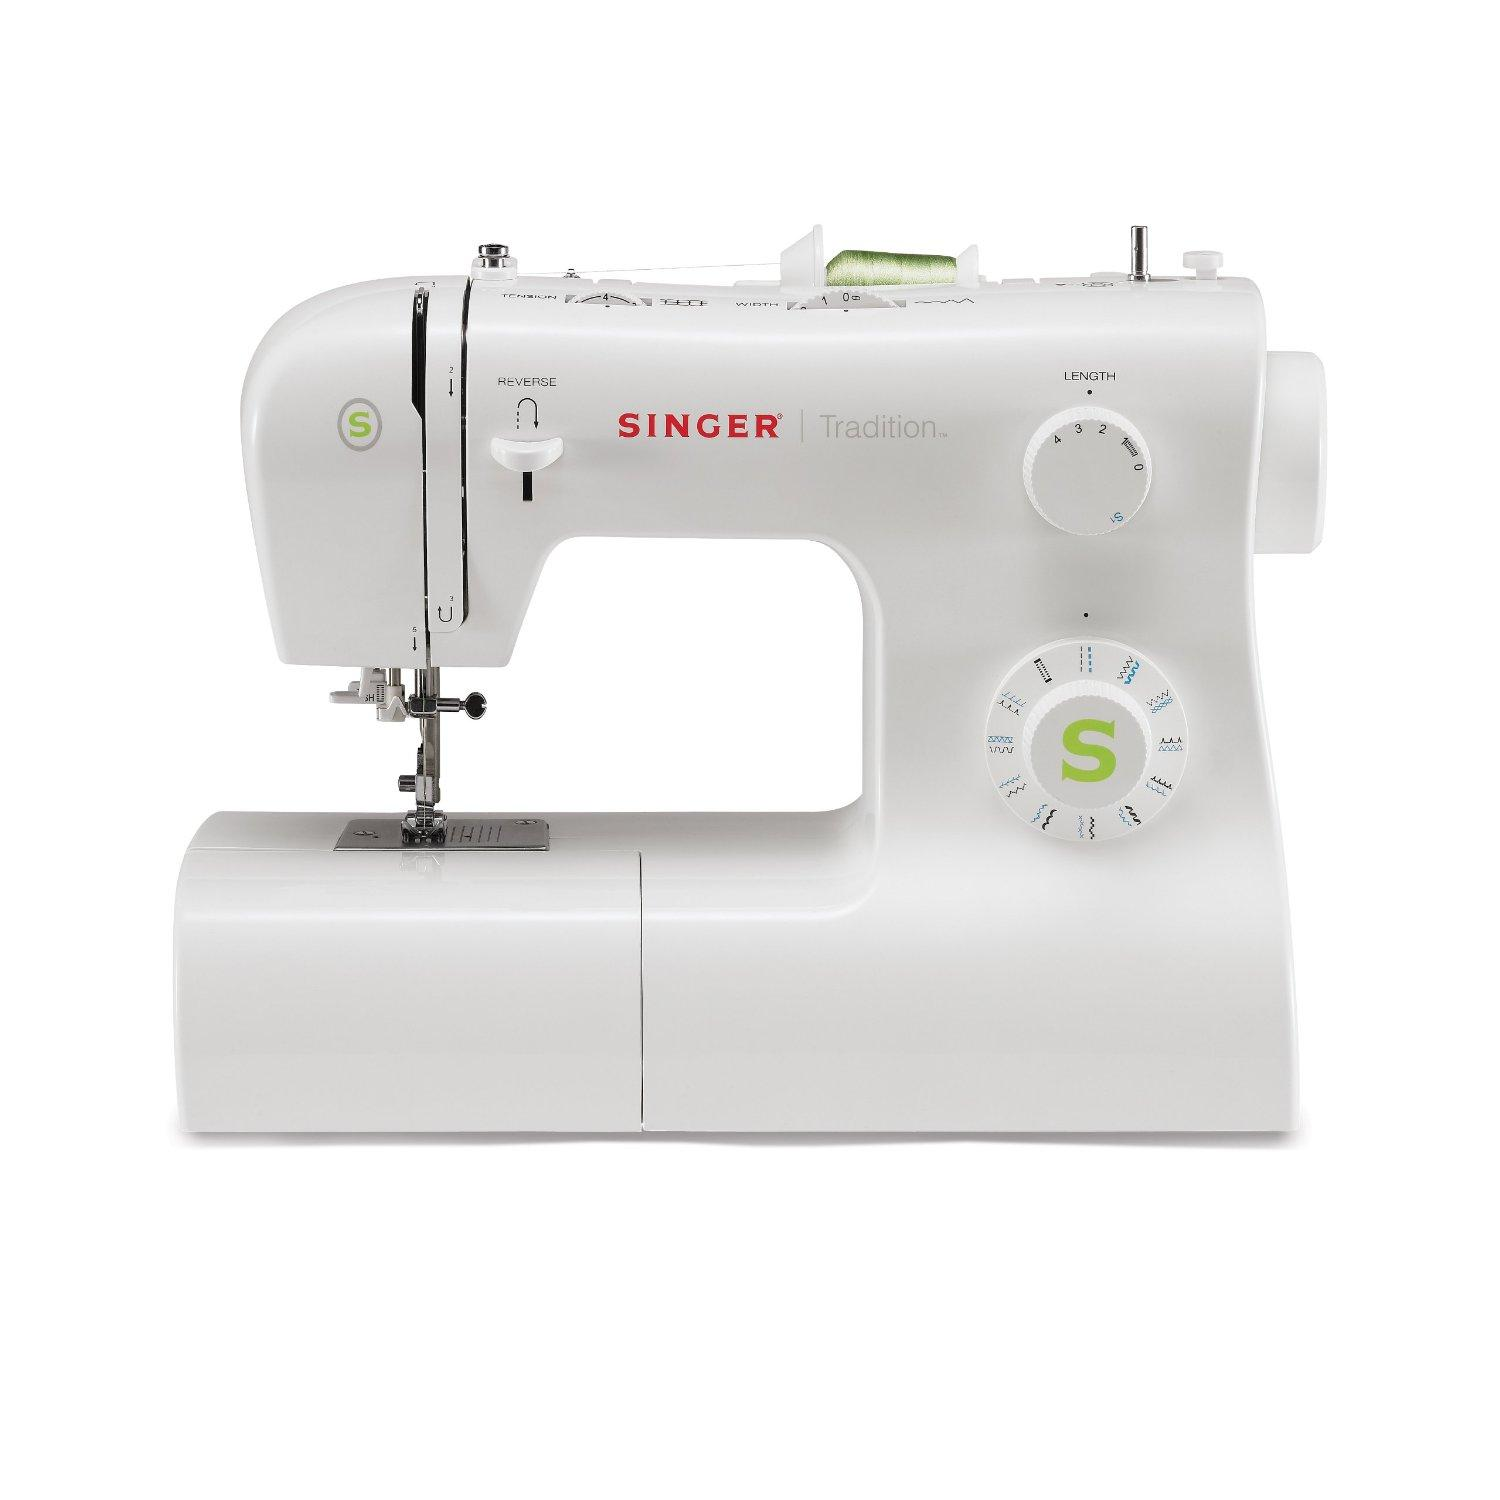 SINGER 2277 Tradition Sewing Machine with Automatic Needle Threader